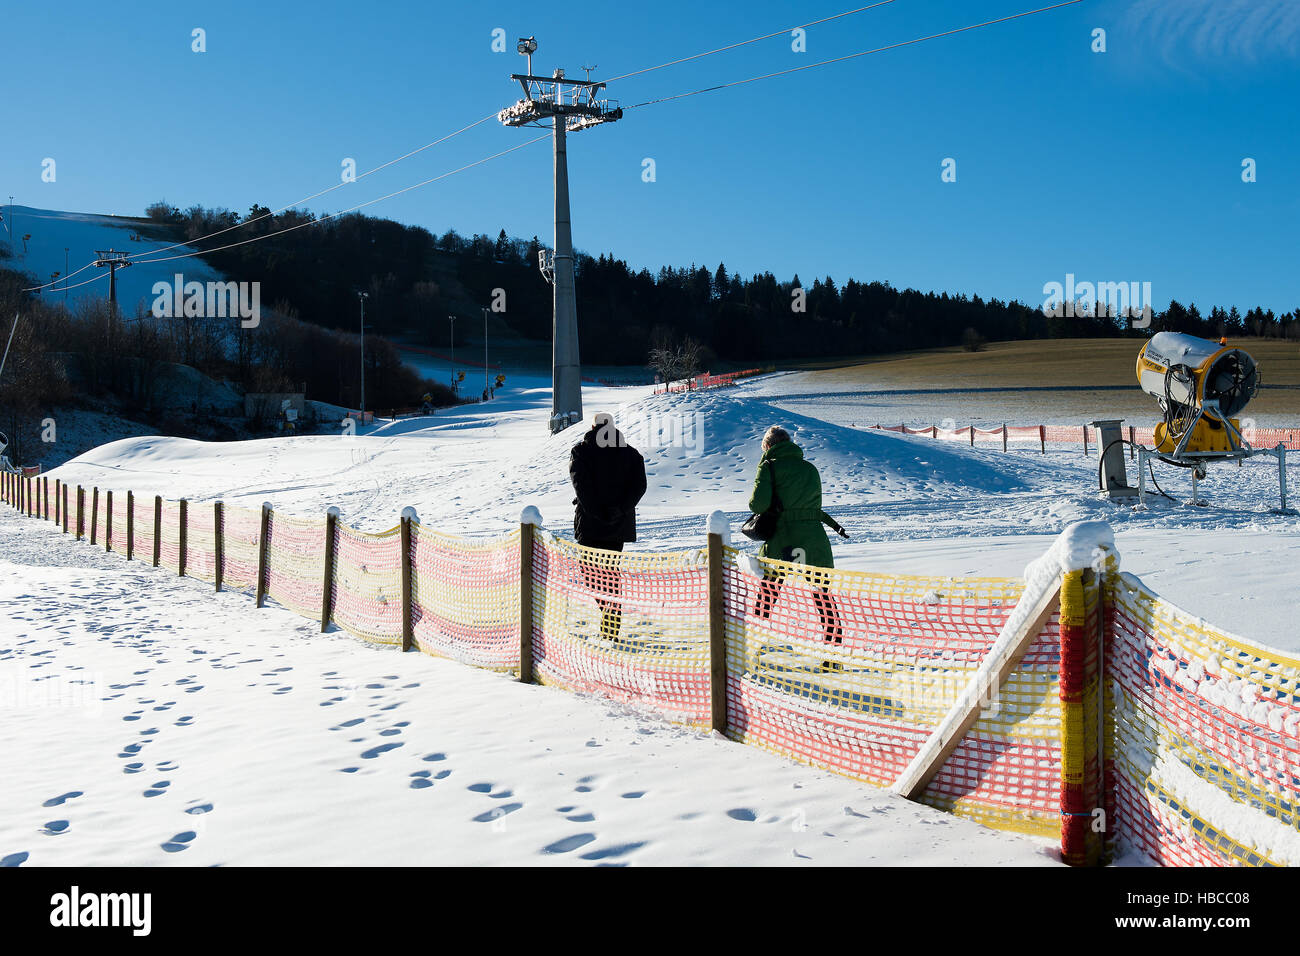 willingen, germany. 5th dec, 2016. hikers walk past ski slopes and a